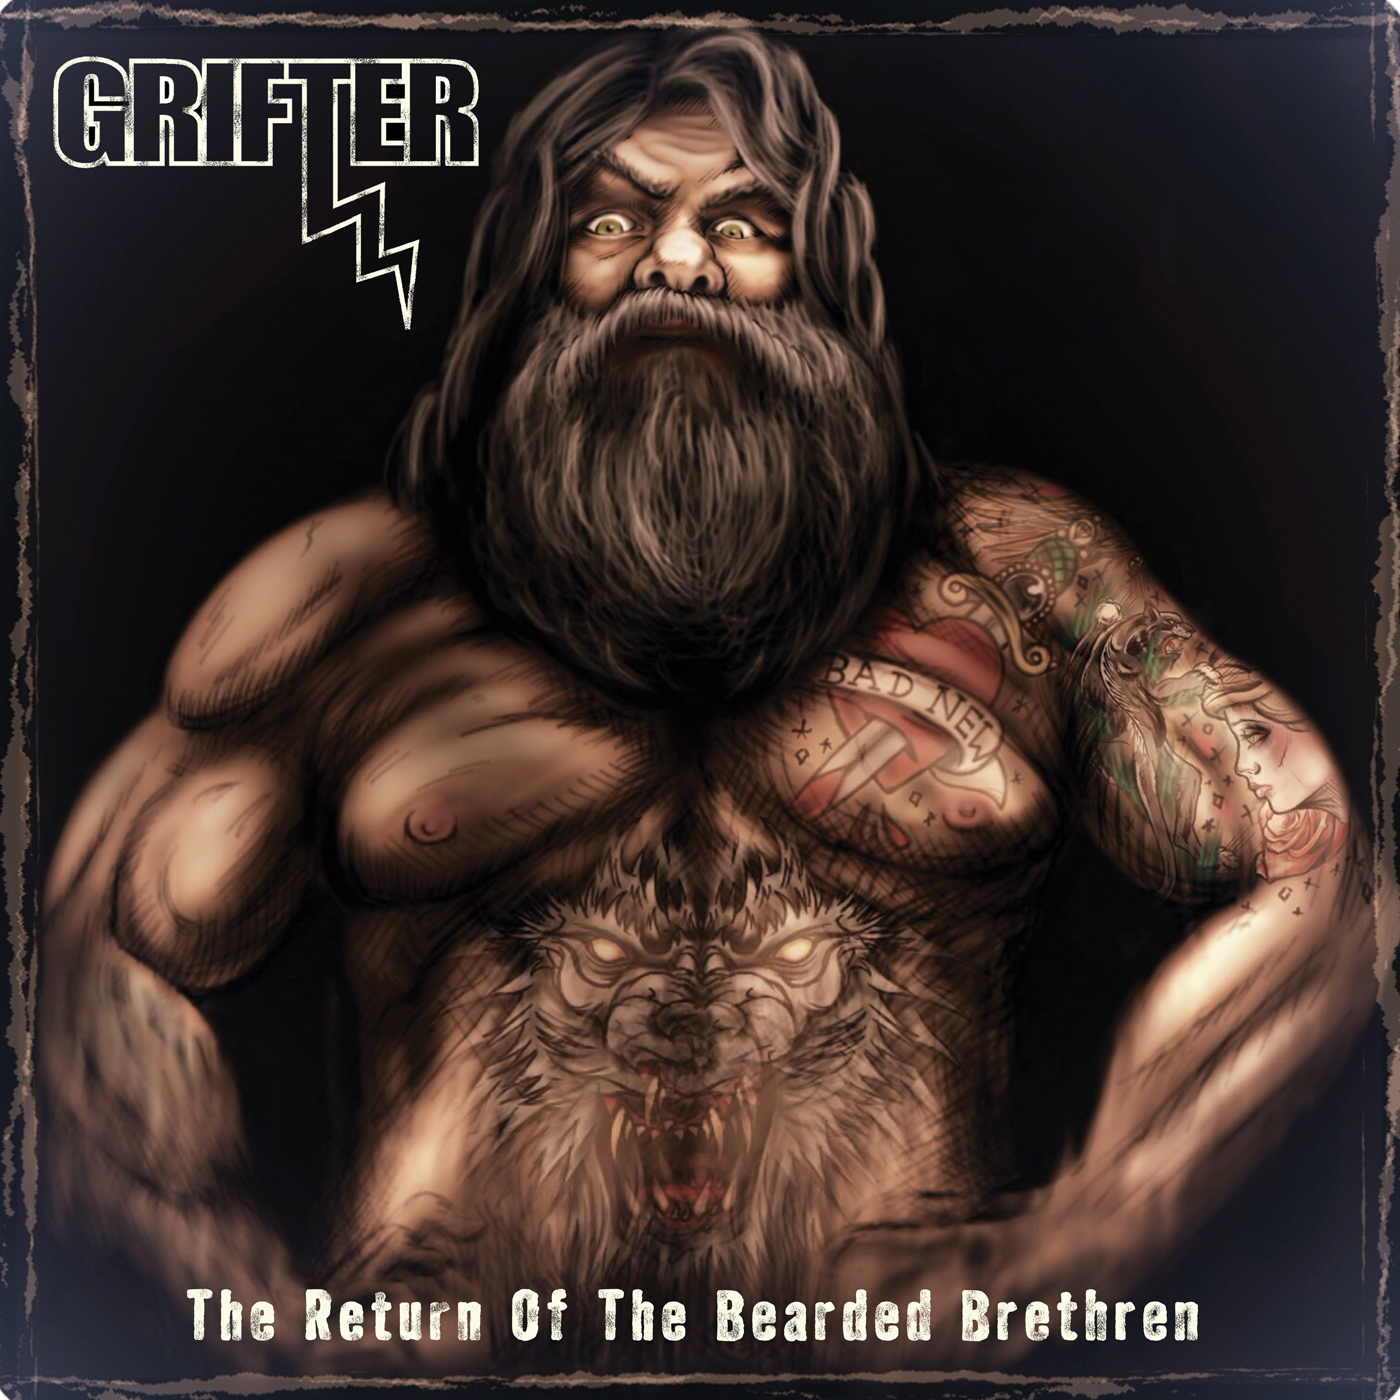 Tastes Like Rock - Grifter - The Return of The Bearded Brethren Review